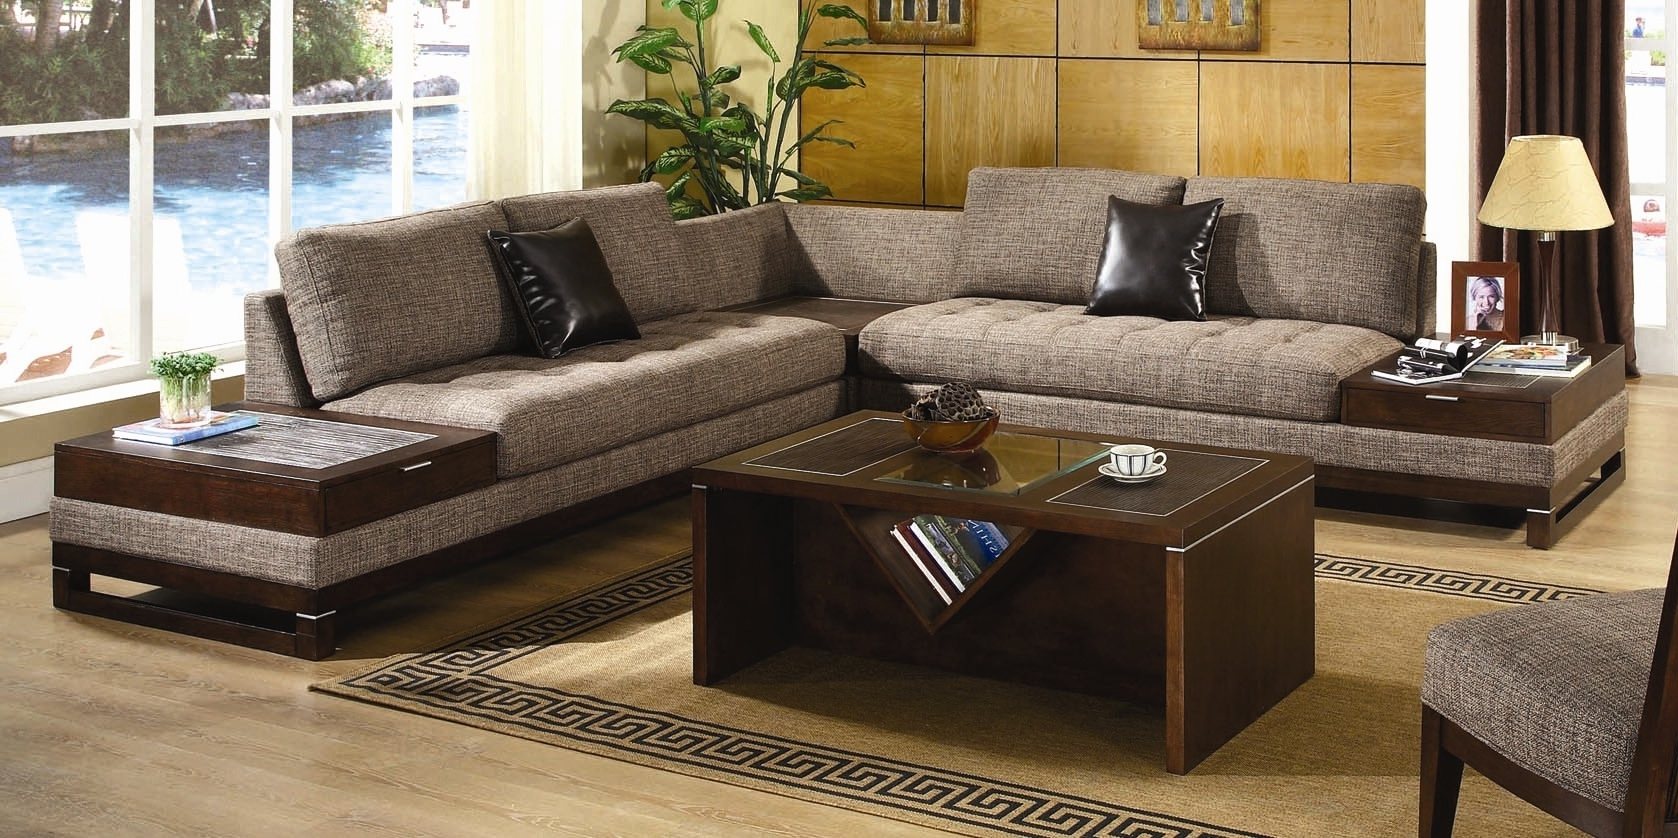 Most Recently Released Living Room Sofa And Chair Sets Intended For Furniture: Discount Living Room Furniture Inspiration Cheap (View 16 of 20)